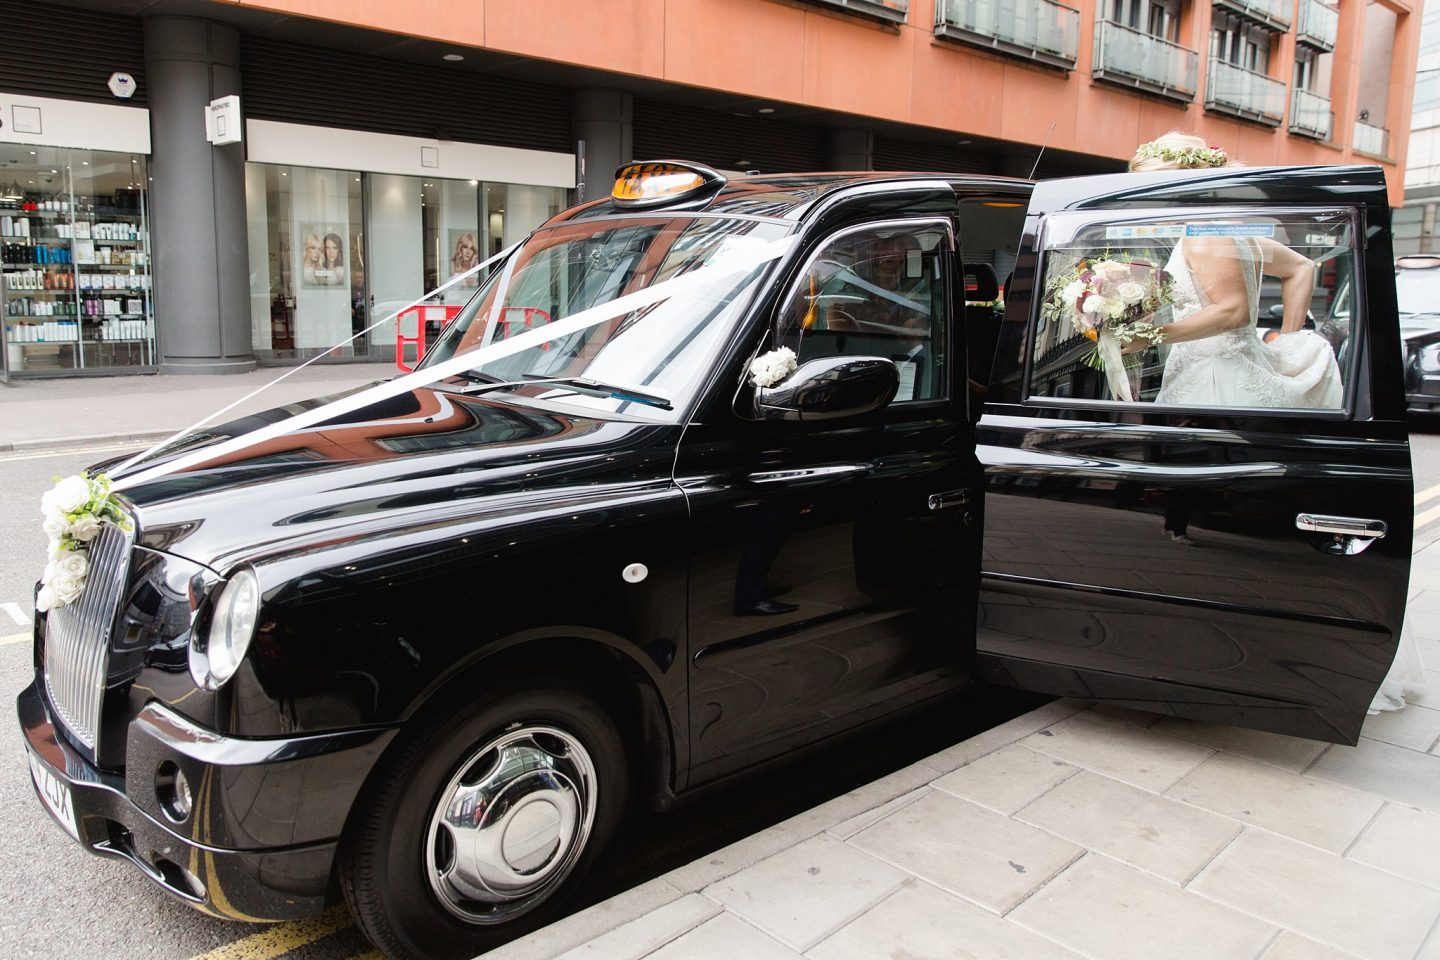 Wedding Checklist wedding taxi black London cab